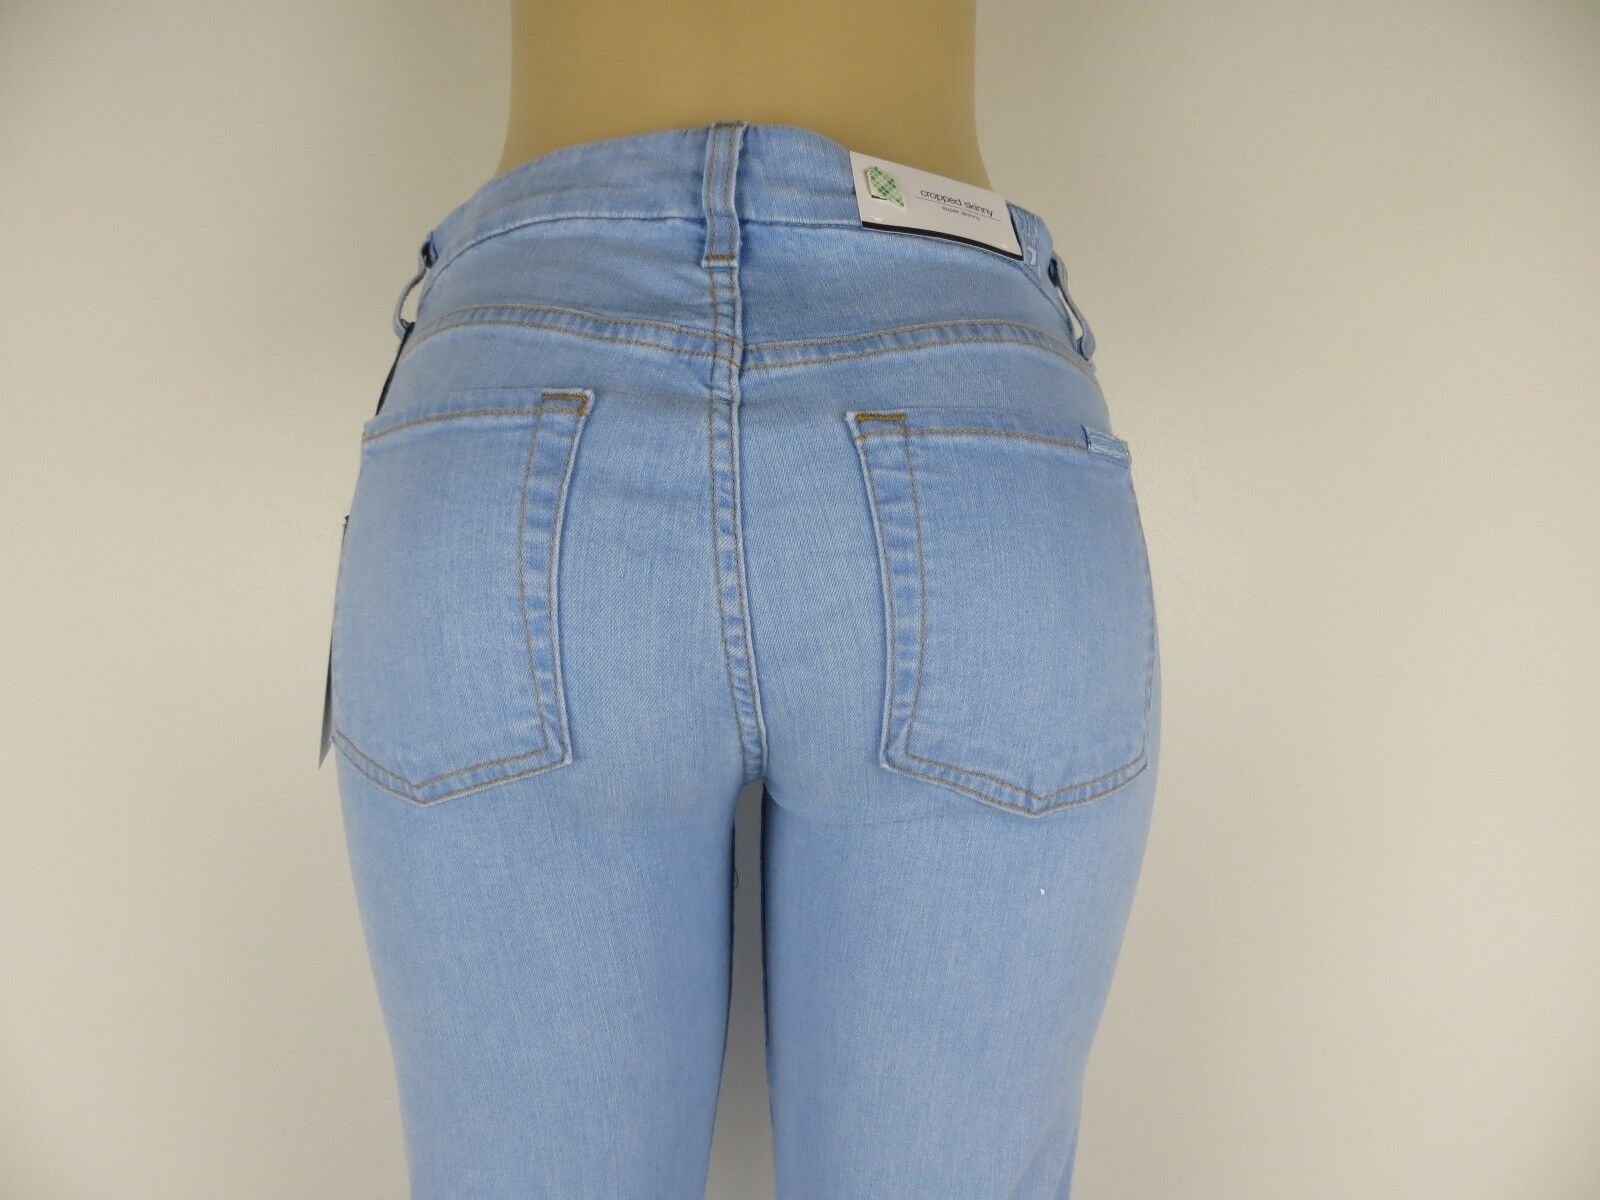 NWT 7 SEVEN FOR ALL MANKIND JEANS,The Cropped Skinny,Bleached Aqua Marine27, 198